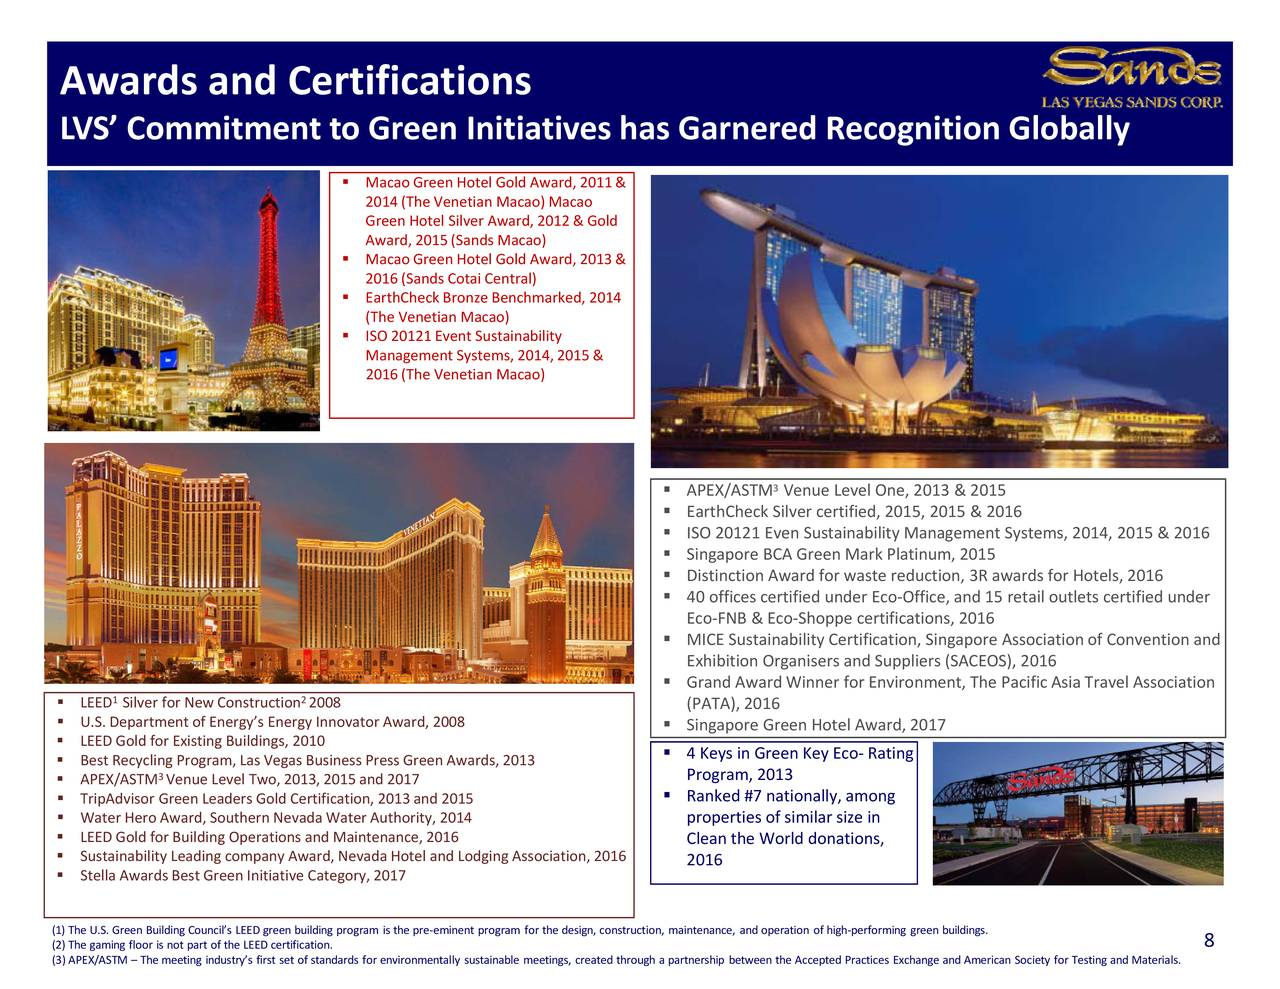 las vegas sands corp a high risk Las vegas sands is clearly an investment proposition with above-average risk levels, but the good news is that uncertainty is already incorporated into valuation to a good degree.